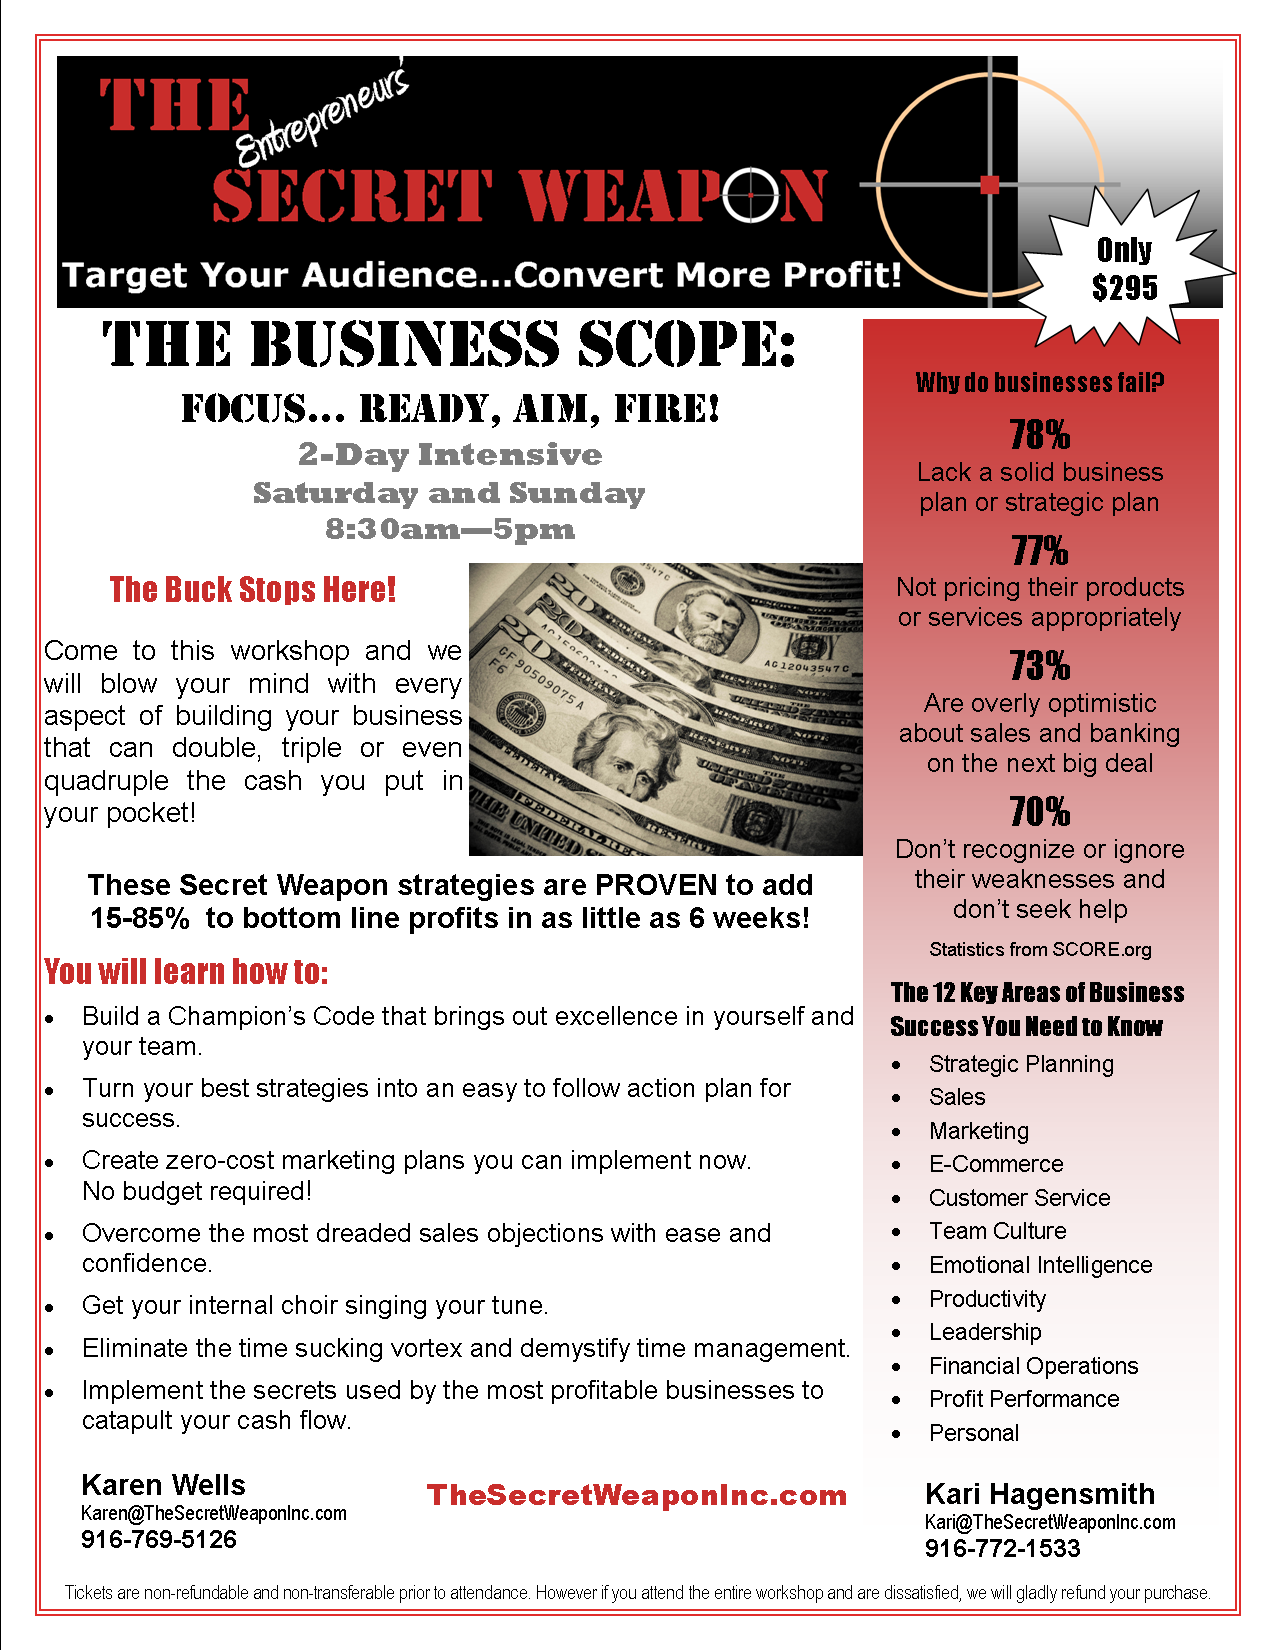 The Secret Weapon Inc., The Business Scope